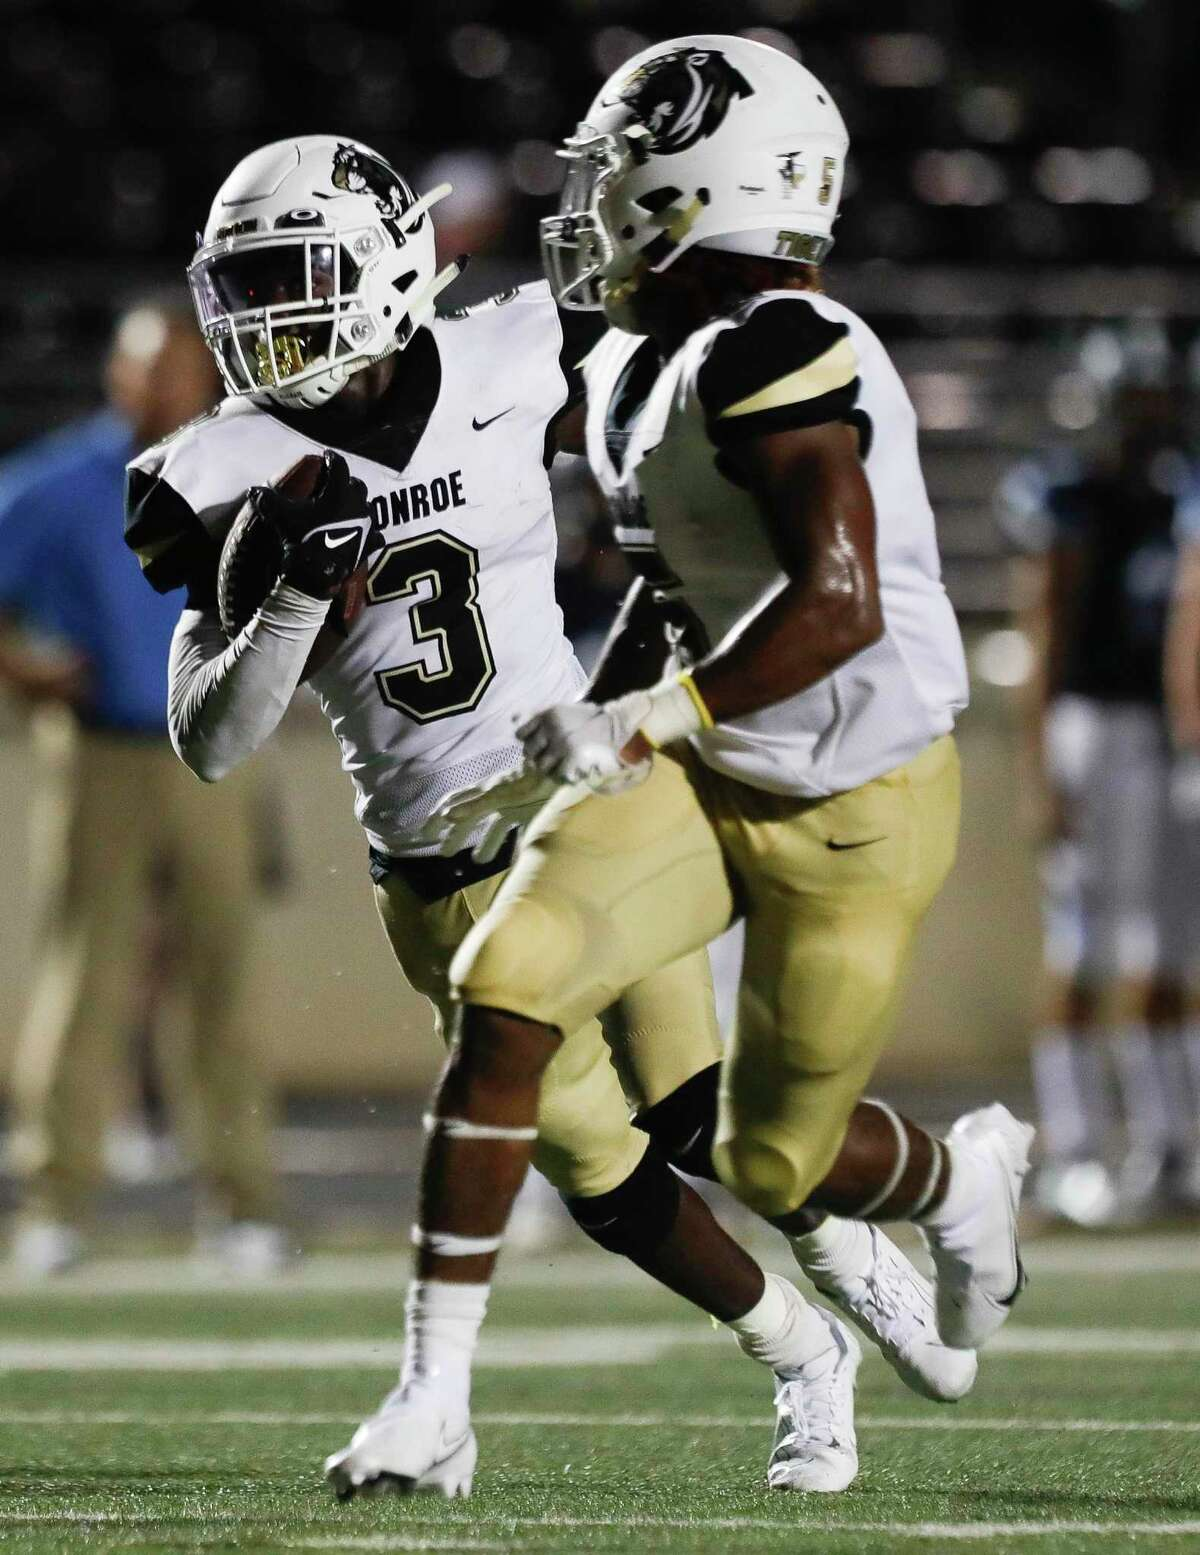 Conroe wide receiver Louis Williams III (3) runs for a 47-yard touchdown during the third quarter of a non-district high school football game at Turner Stadium, Thursday, Sept. 2, 2021, in Humble.